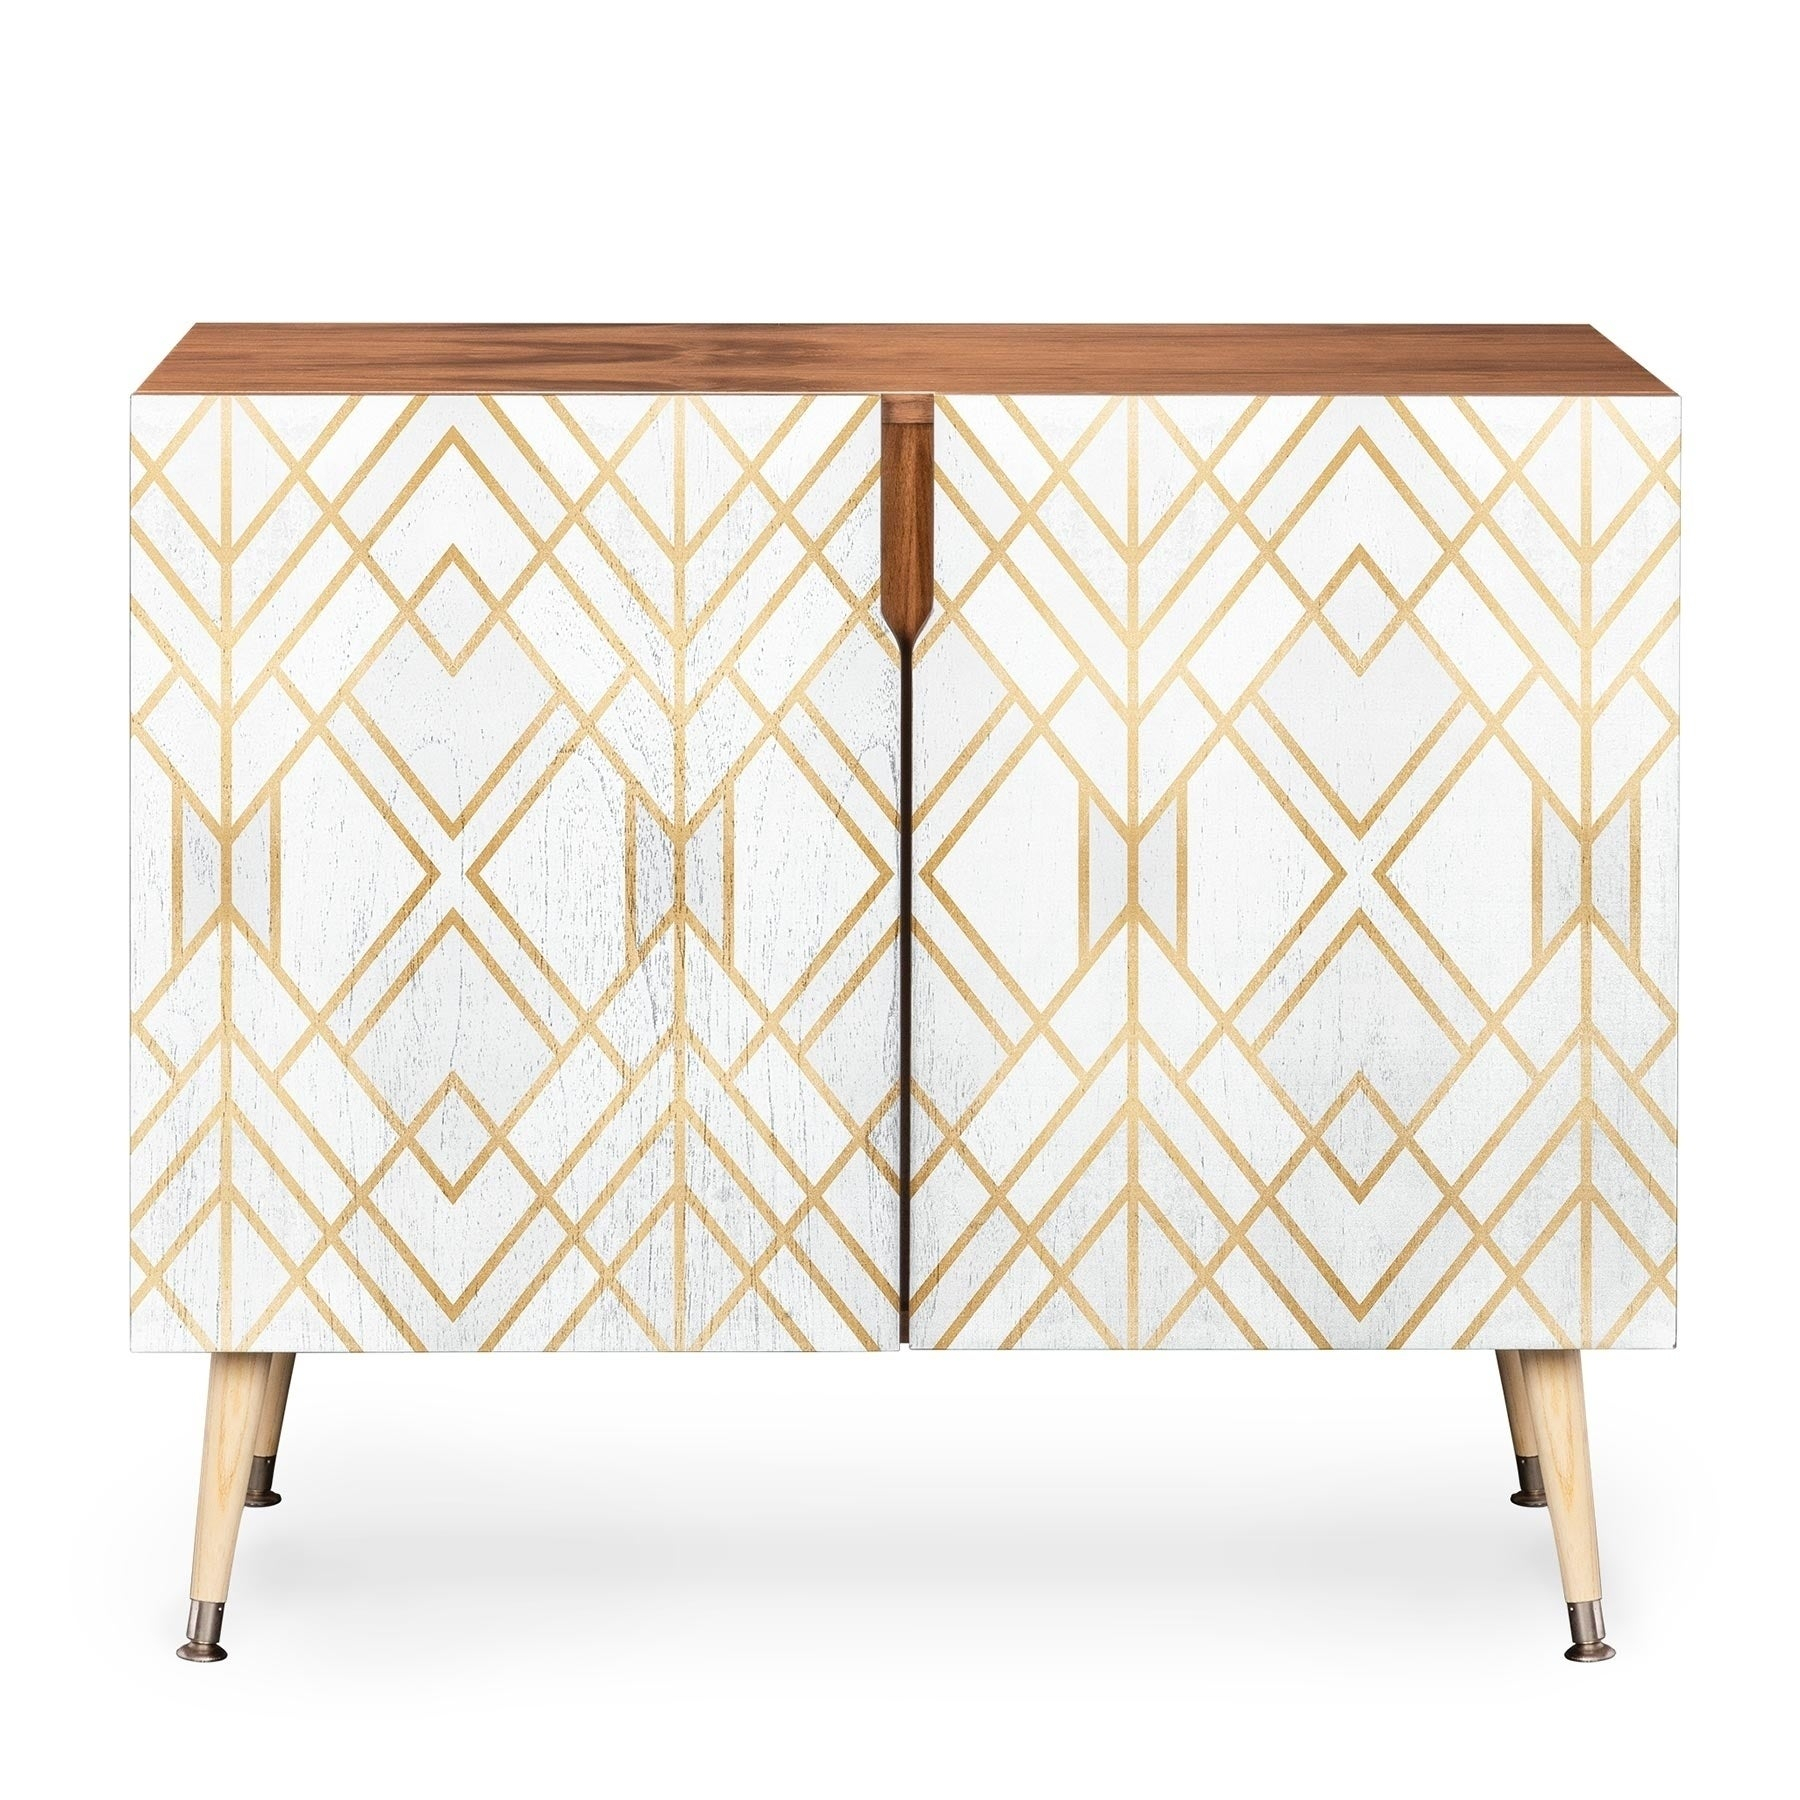 Deny Designs White Geometric Credenza (Birch Or Walnut, 3 Leg Options) Pertaining To Copper Leaf Wood Credenzas (Photo 7 of 30)